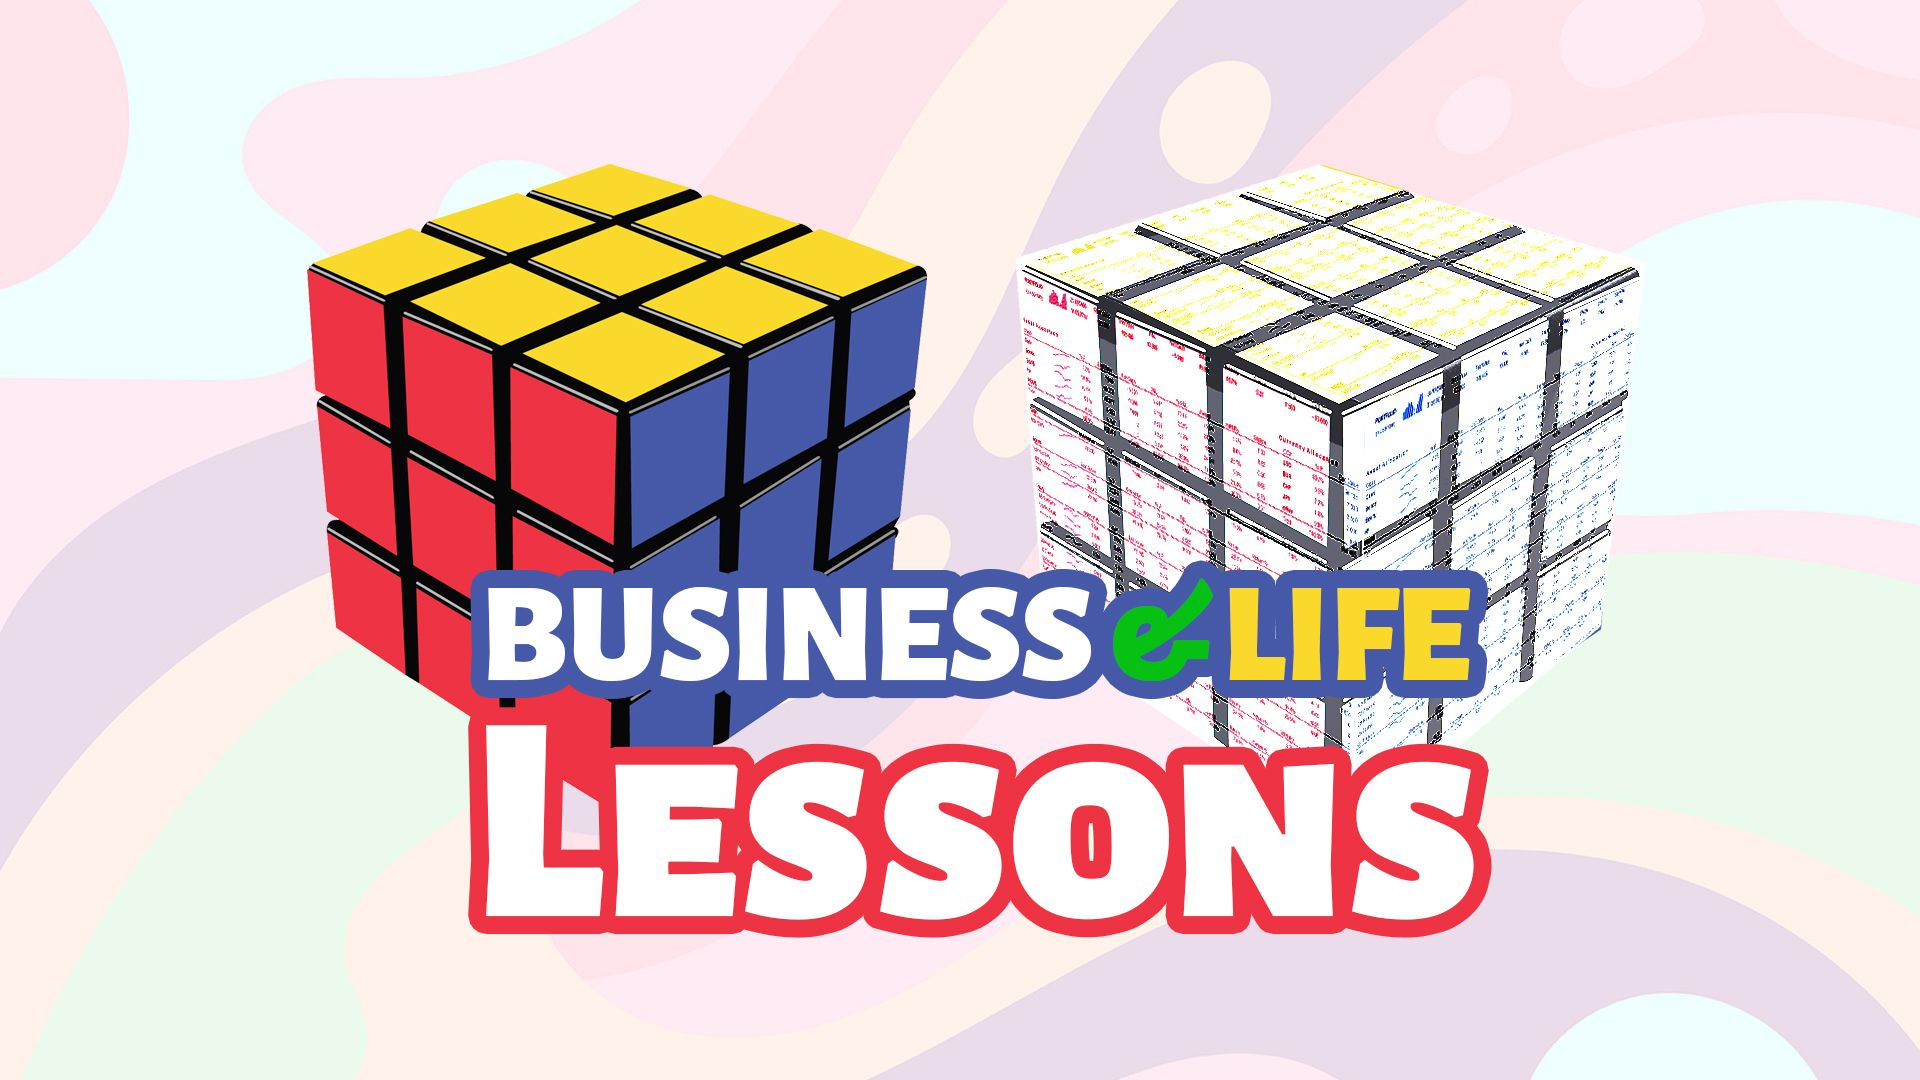 5 Business and Life Lessons from the Rubik's Cube